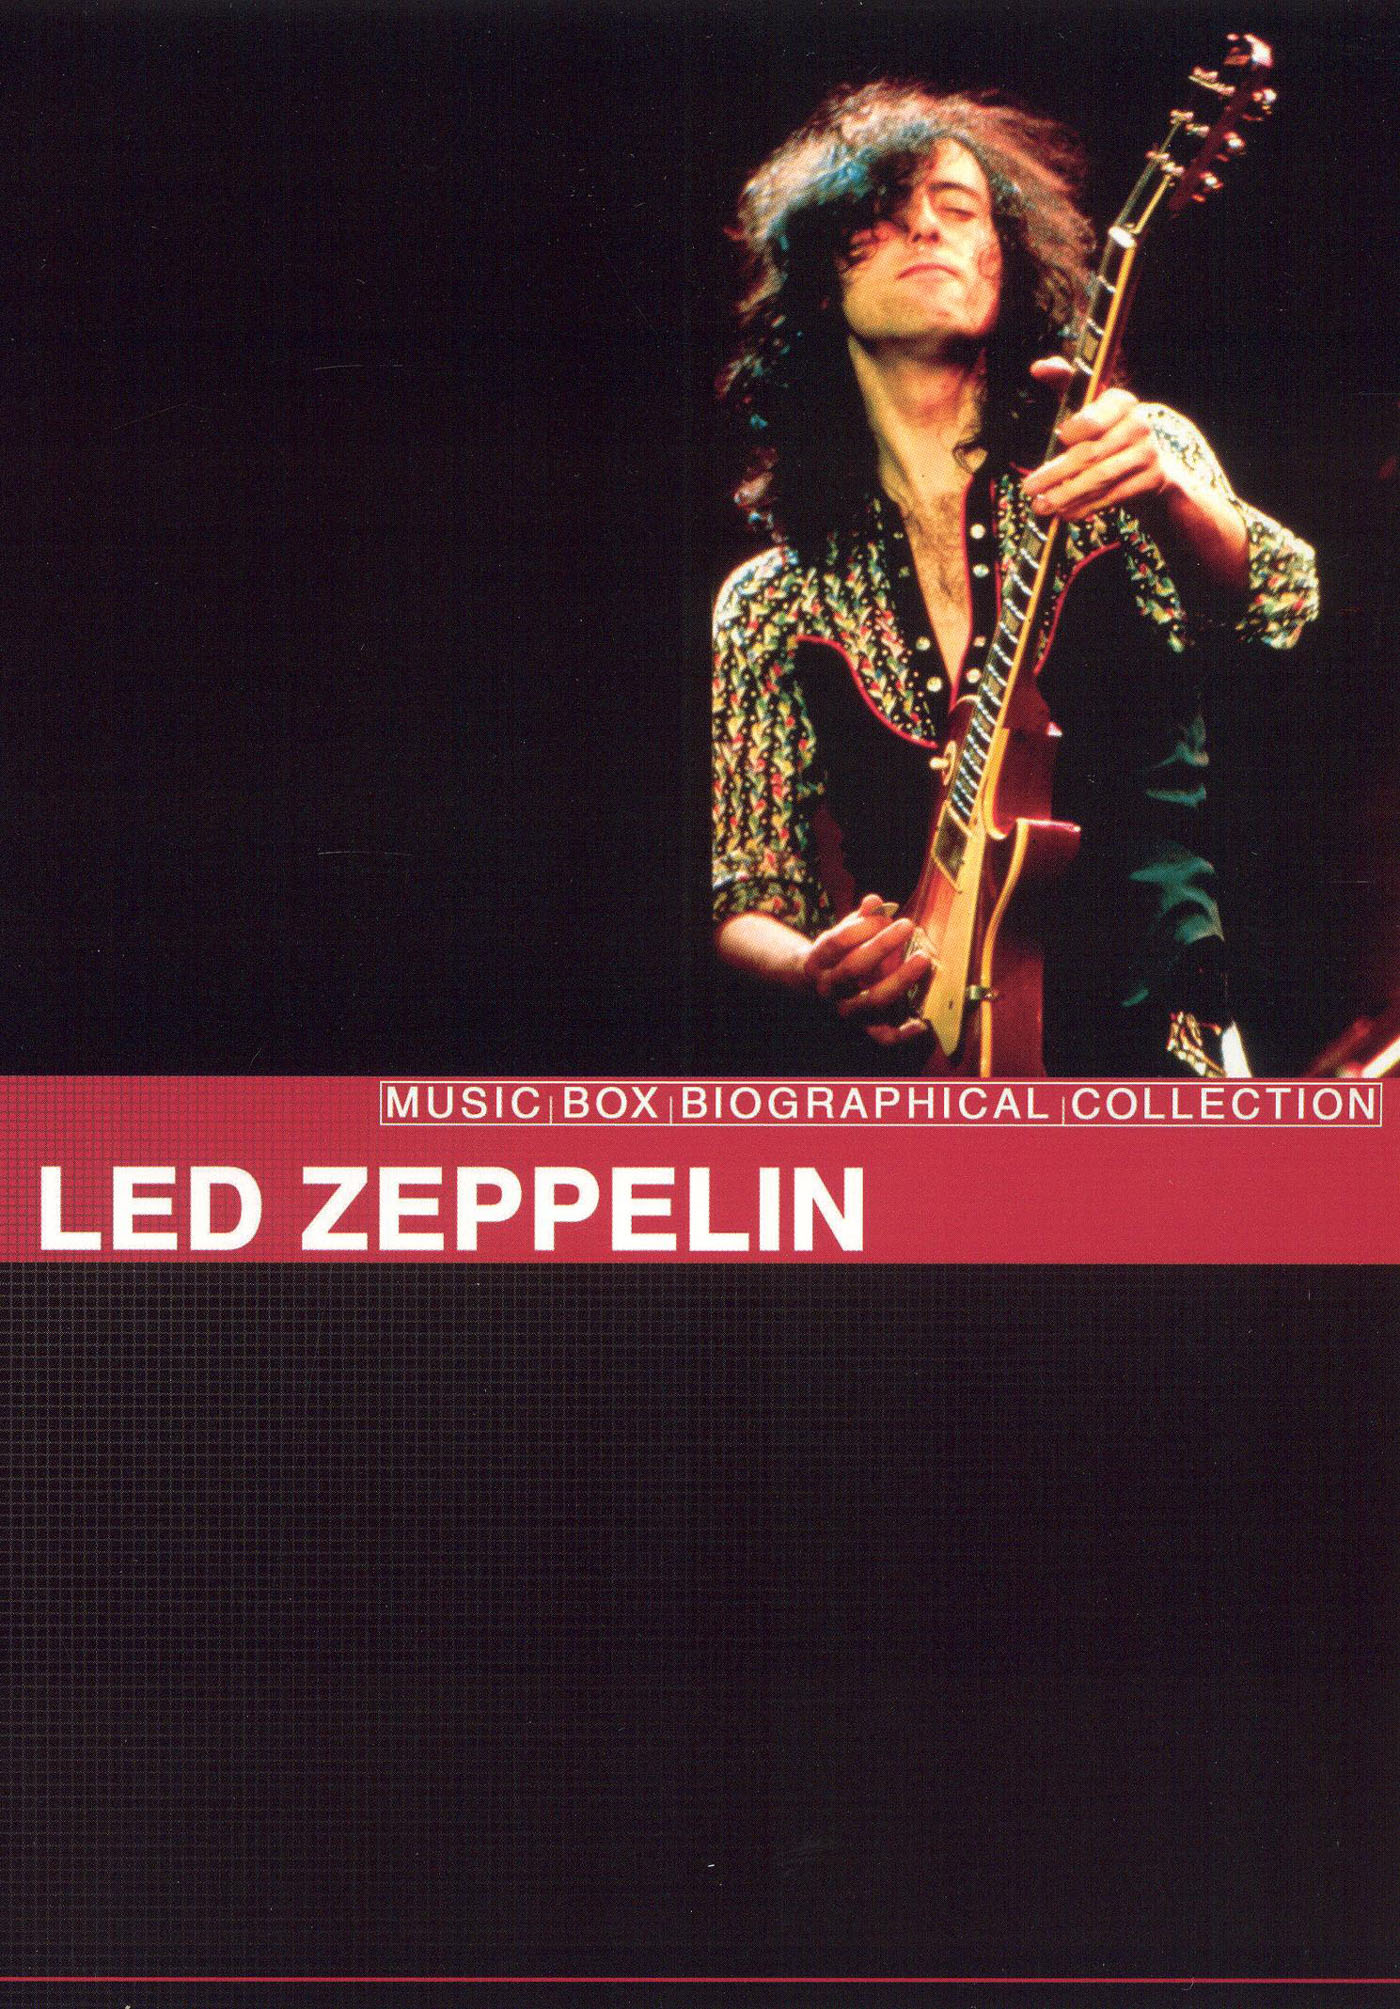 Music Box Biographical Collection: Led Zeppelin